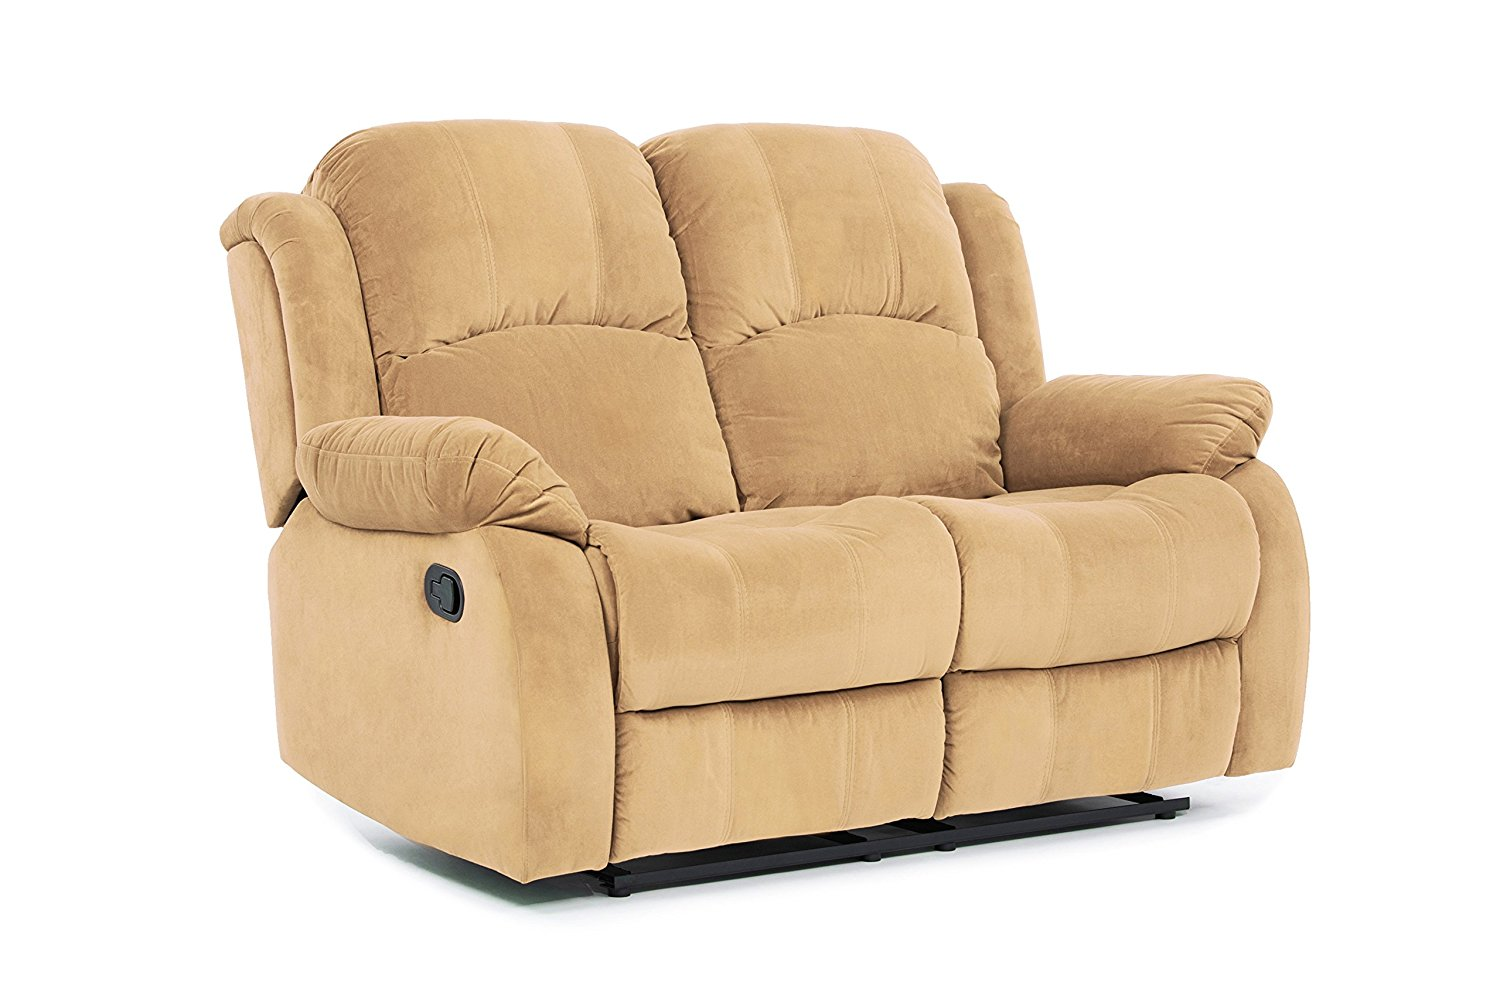 Classic and Traditional Brush Microfiber Recliner Chair, Love Seat, Sofa Size - 1 Seater, 2 Seater, 3 Seater Set (2 Seater)